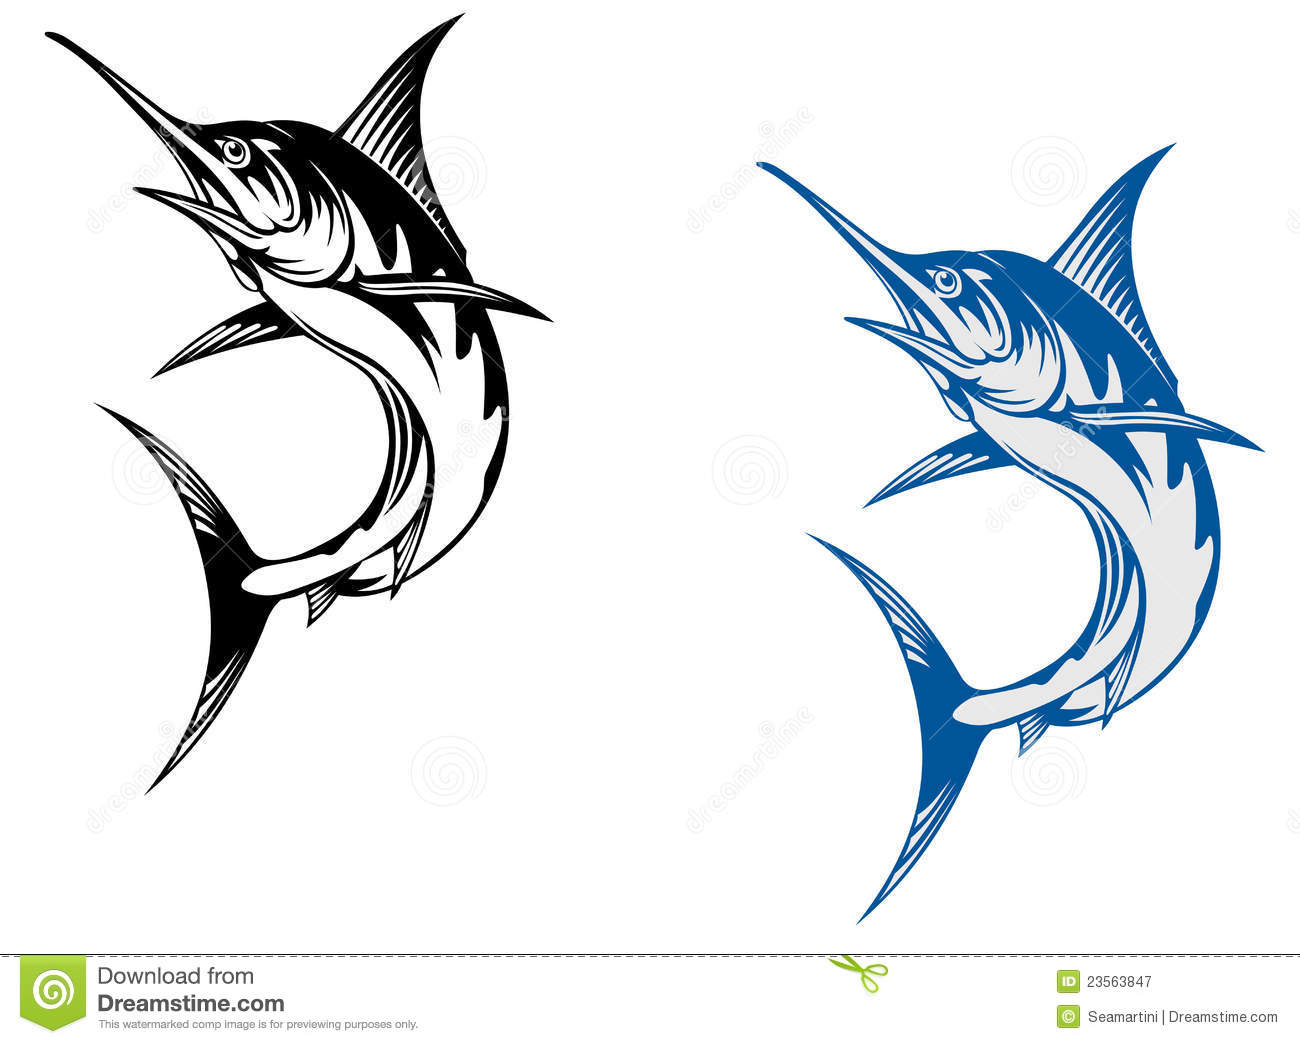 Fishing hook icon  Stock Vector  chatchai5172 36537123